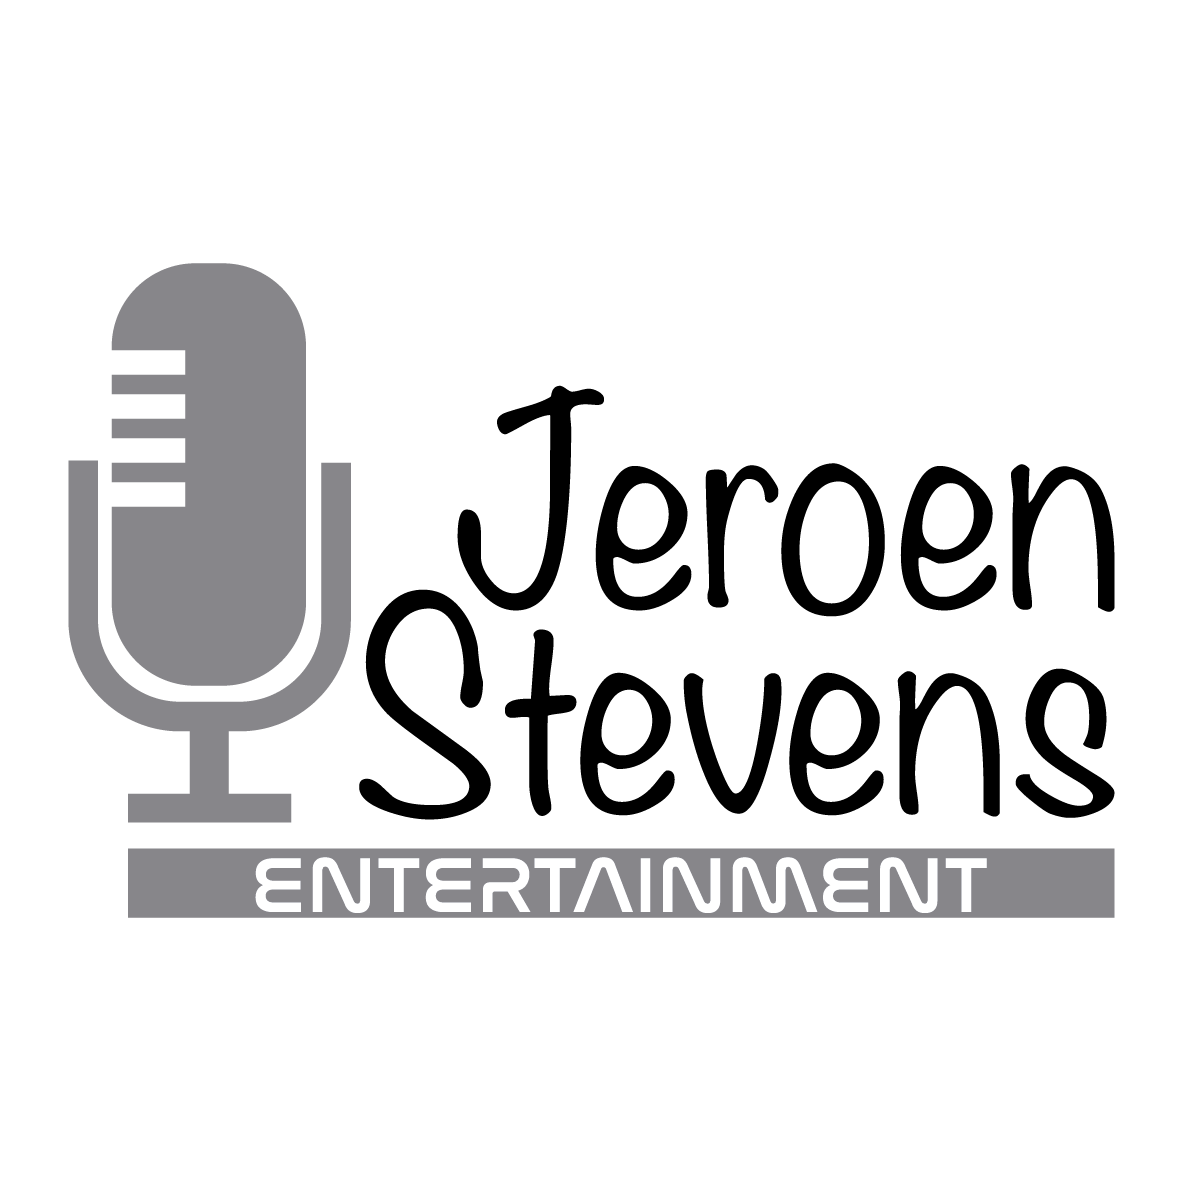 Jeroen Stevens Entertainment logo